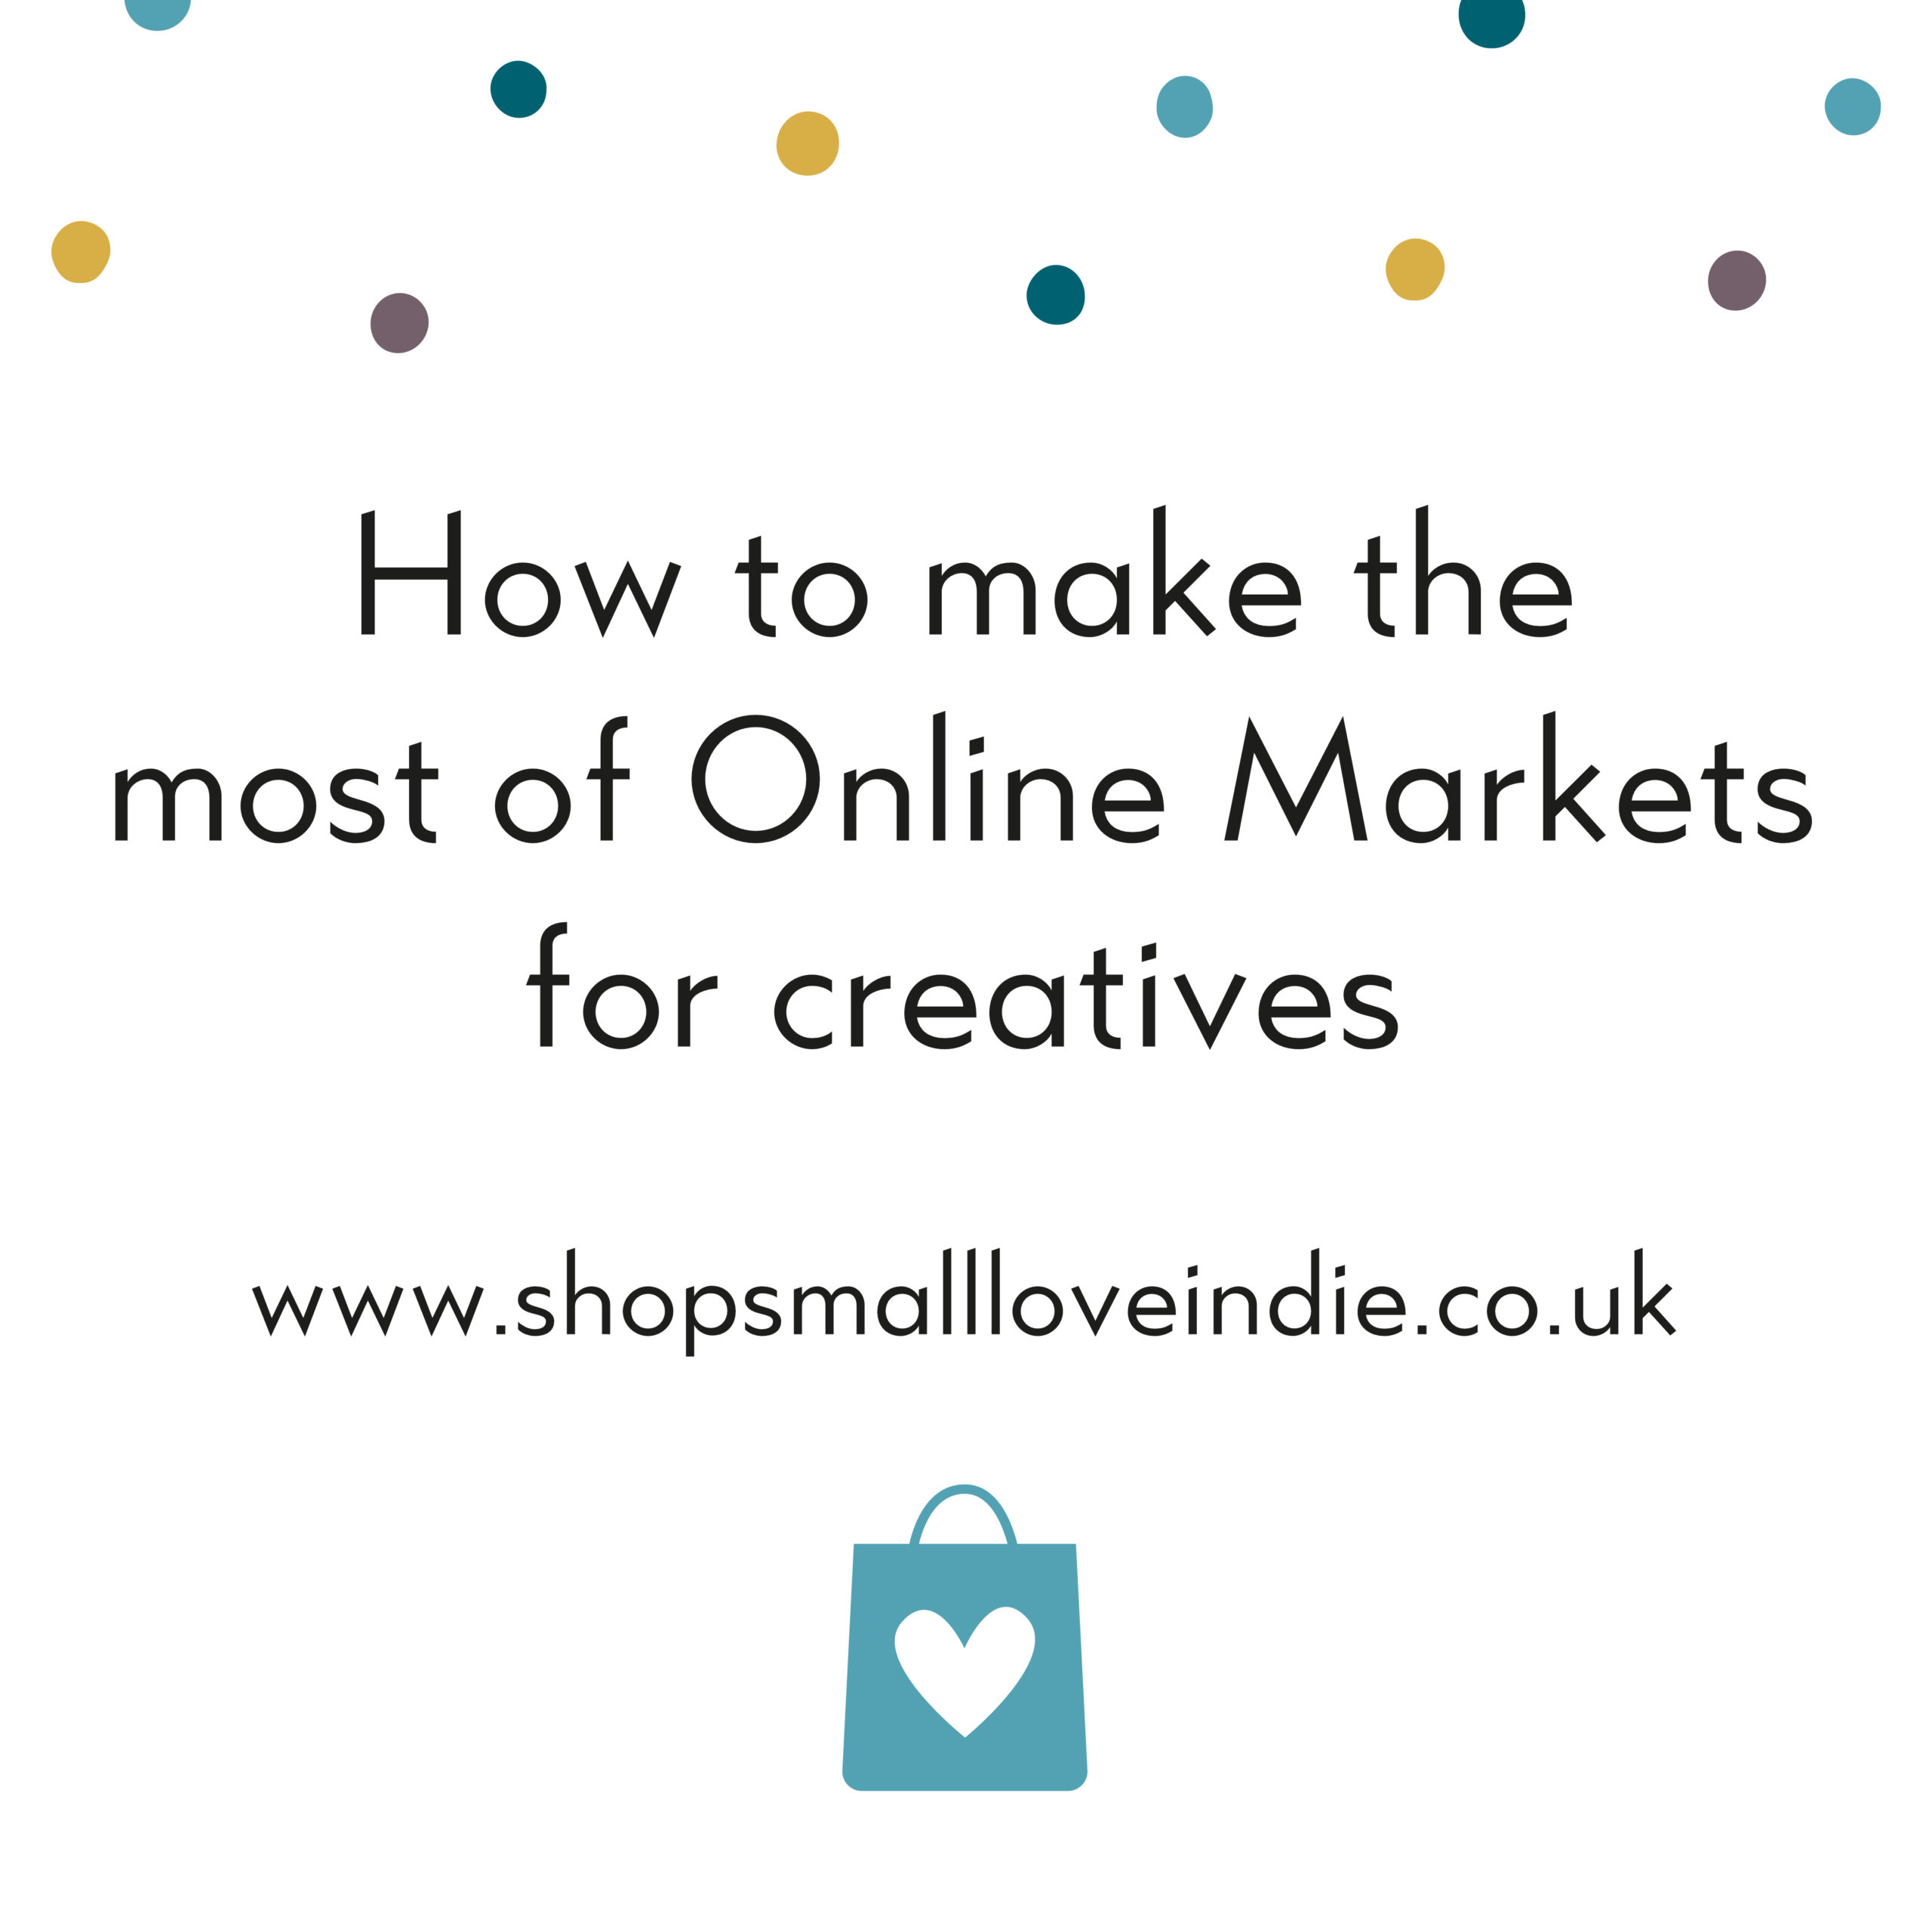 How to make the most of online markets for creatives